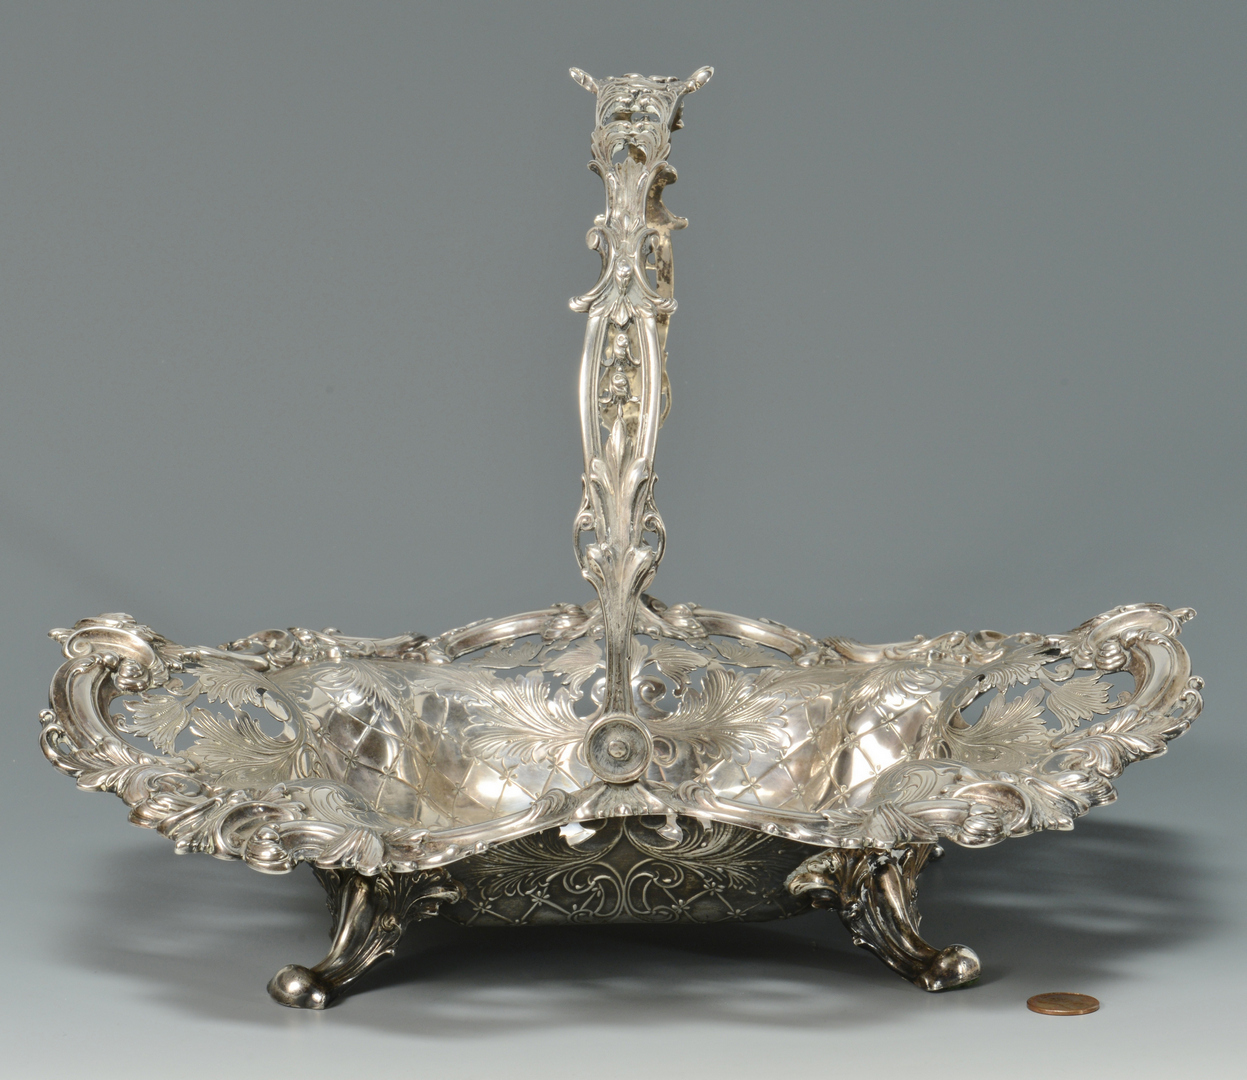 Lot 3088074: Sterling Cake Basket, Galt & Bro.